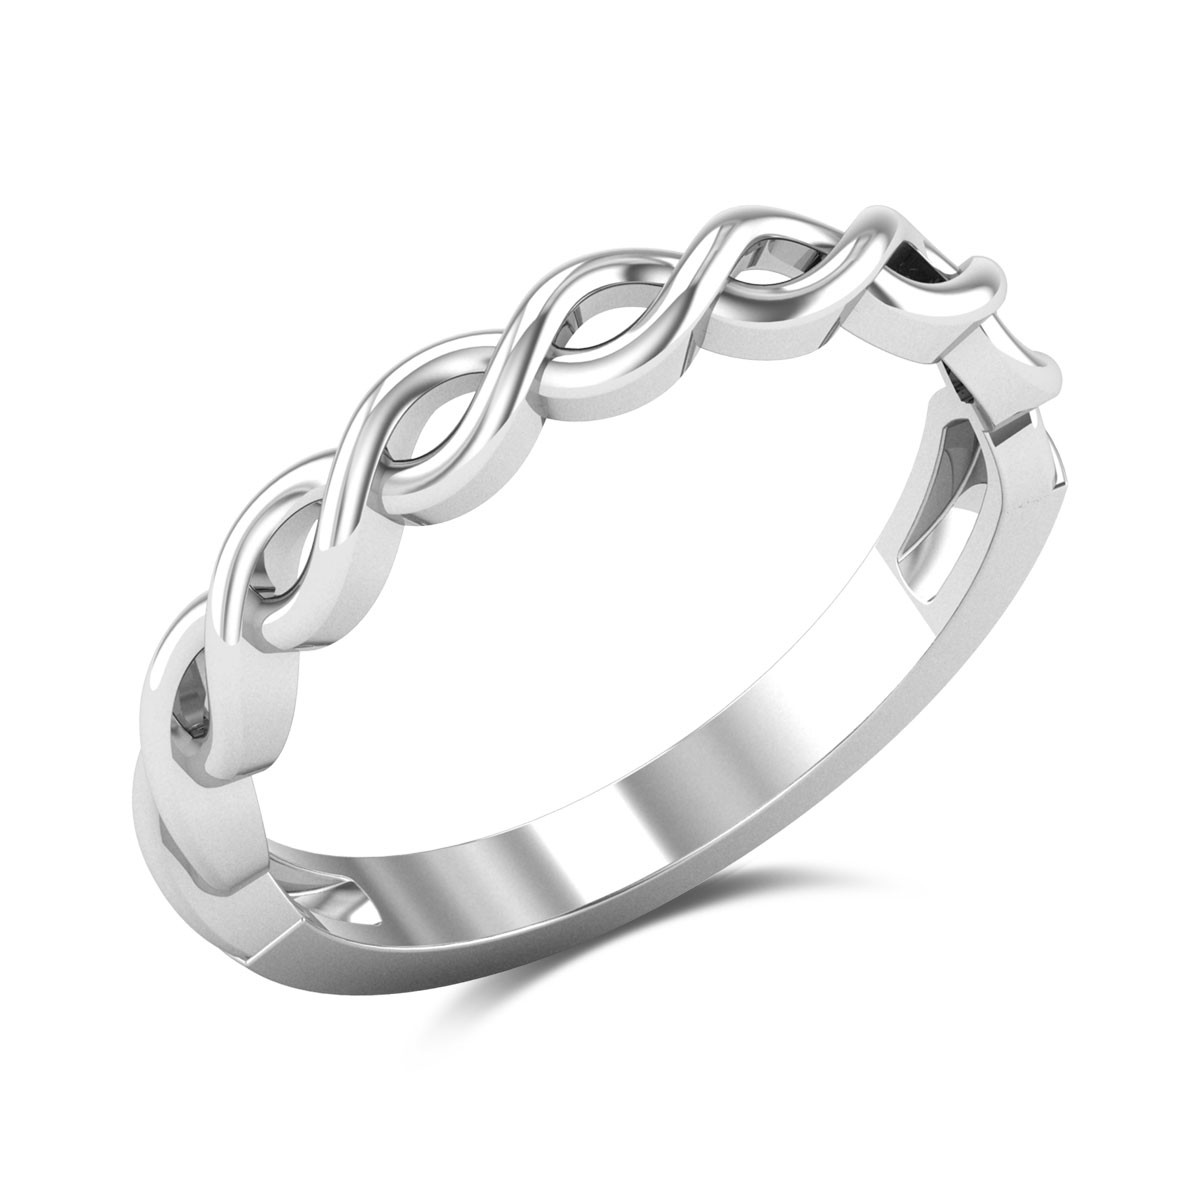 Aboil Twisted Ring